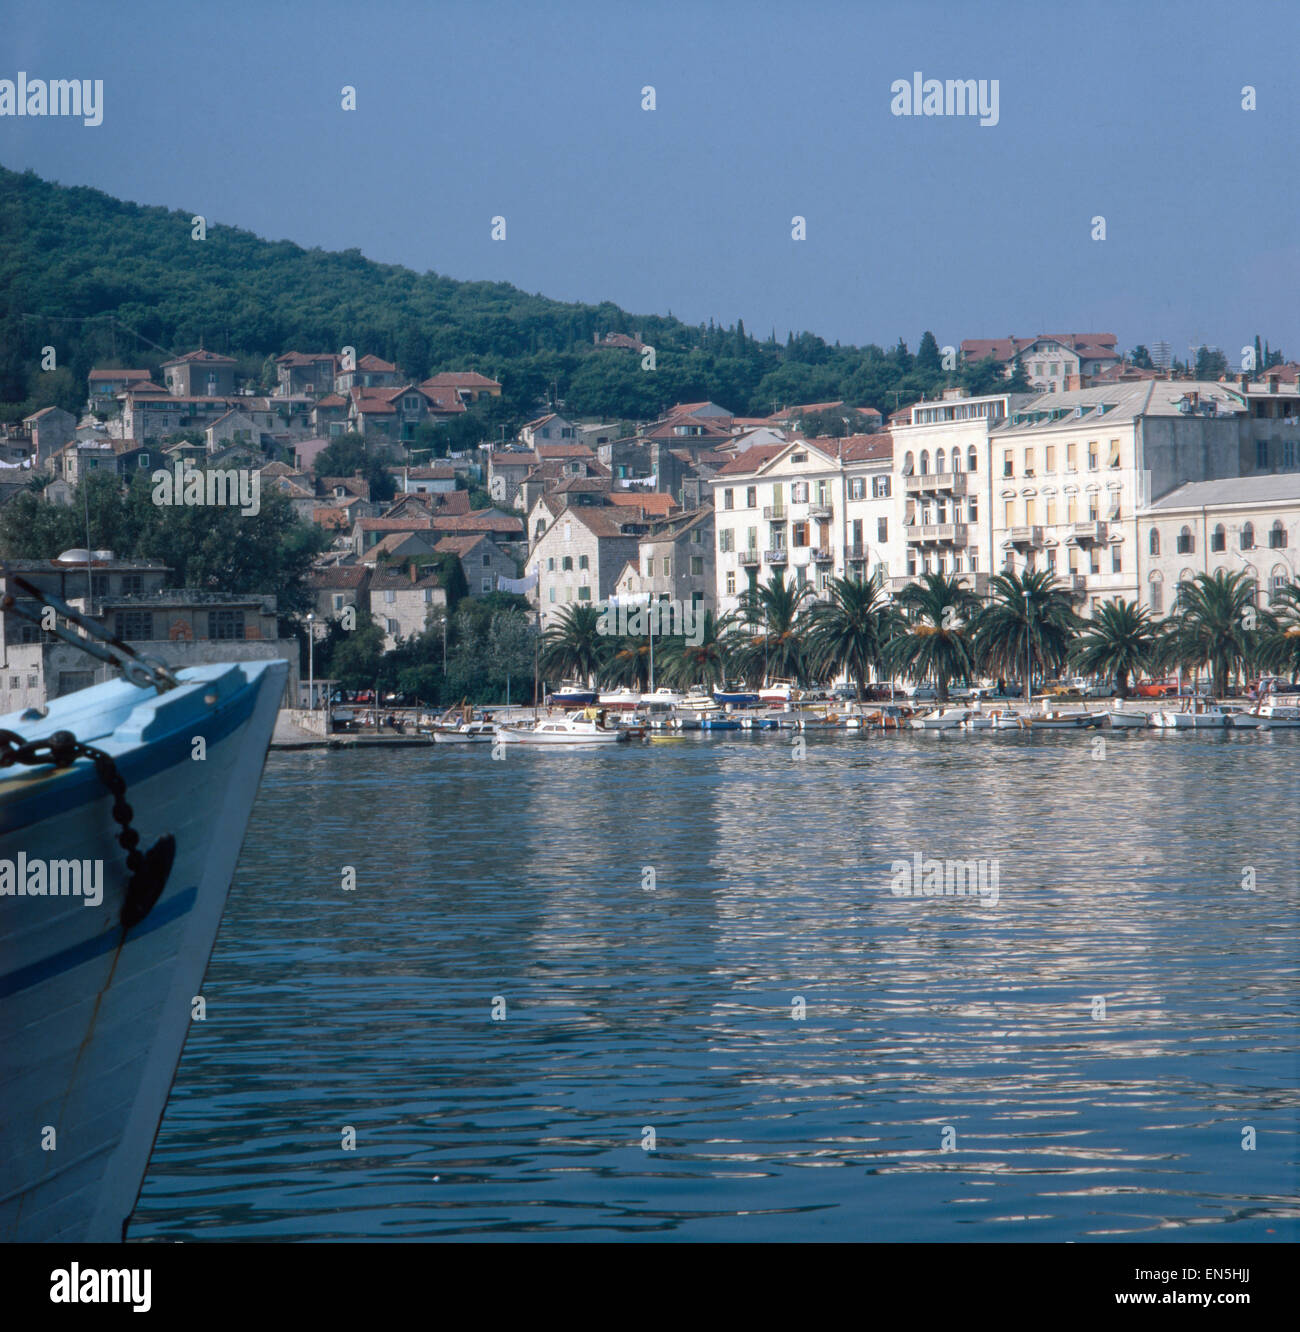 urlaub in split kroatien jugoslawien 1970er jahre vacation in stock photo 81872858 alamy. Black Bedroom Furniture Sets. Home Design Ideas